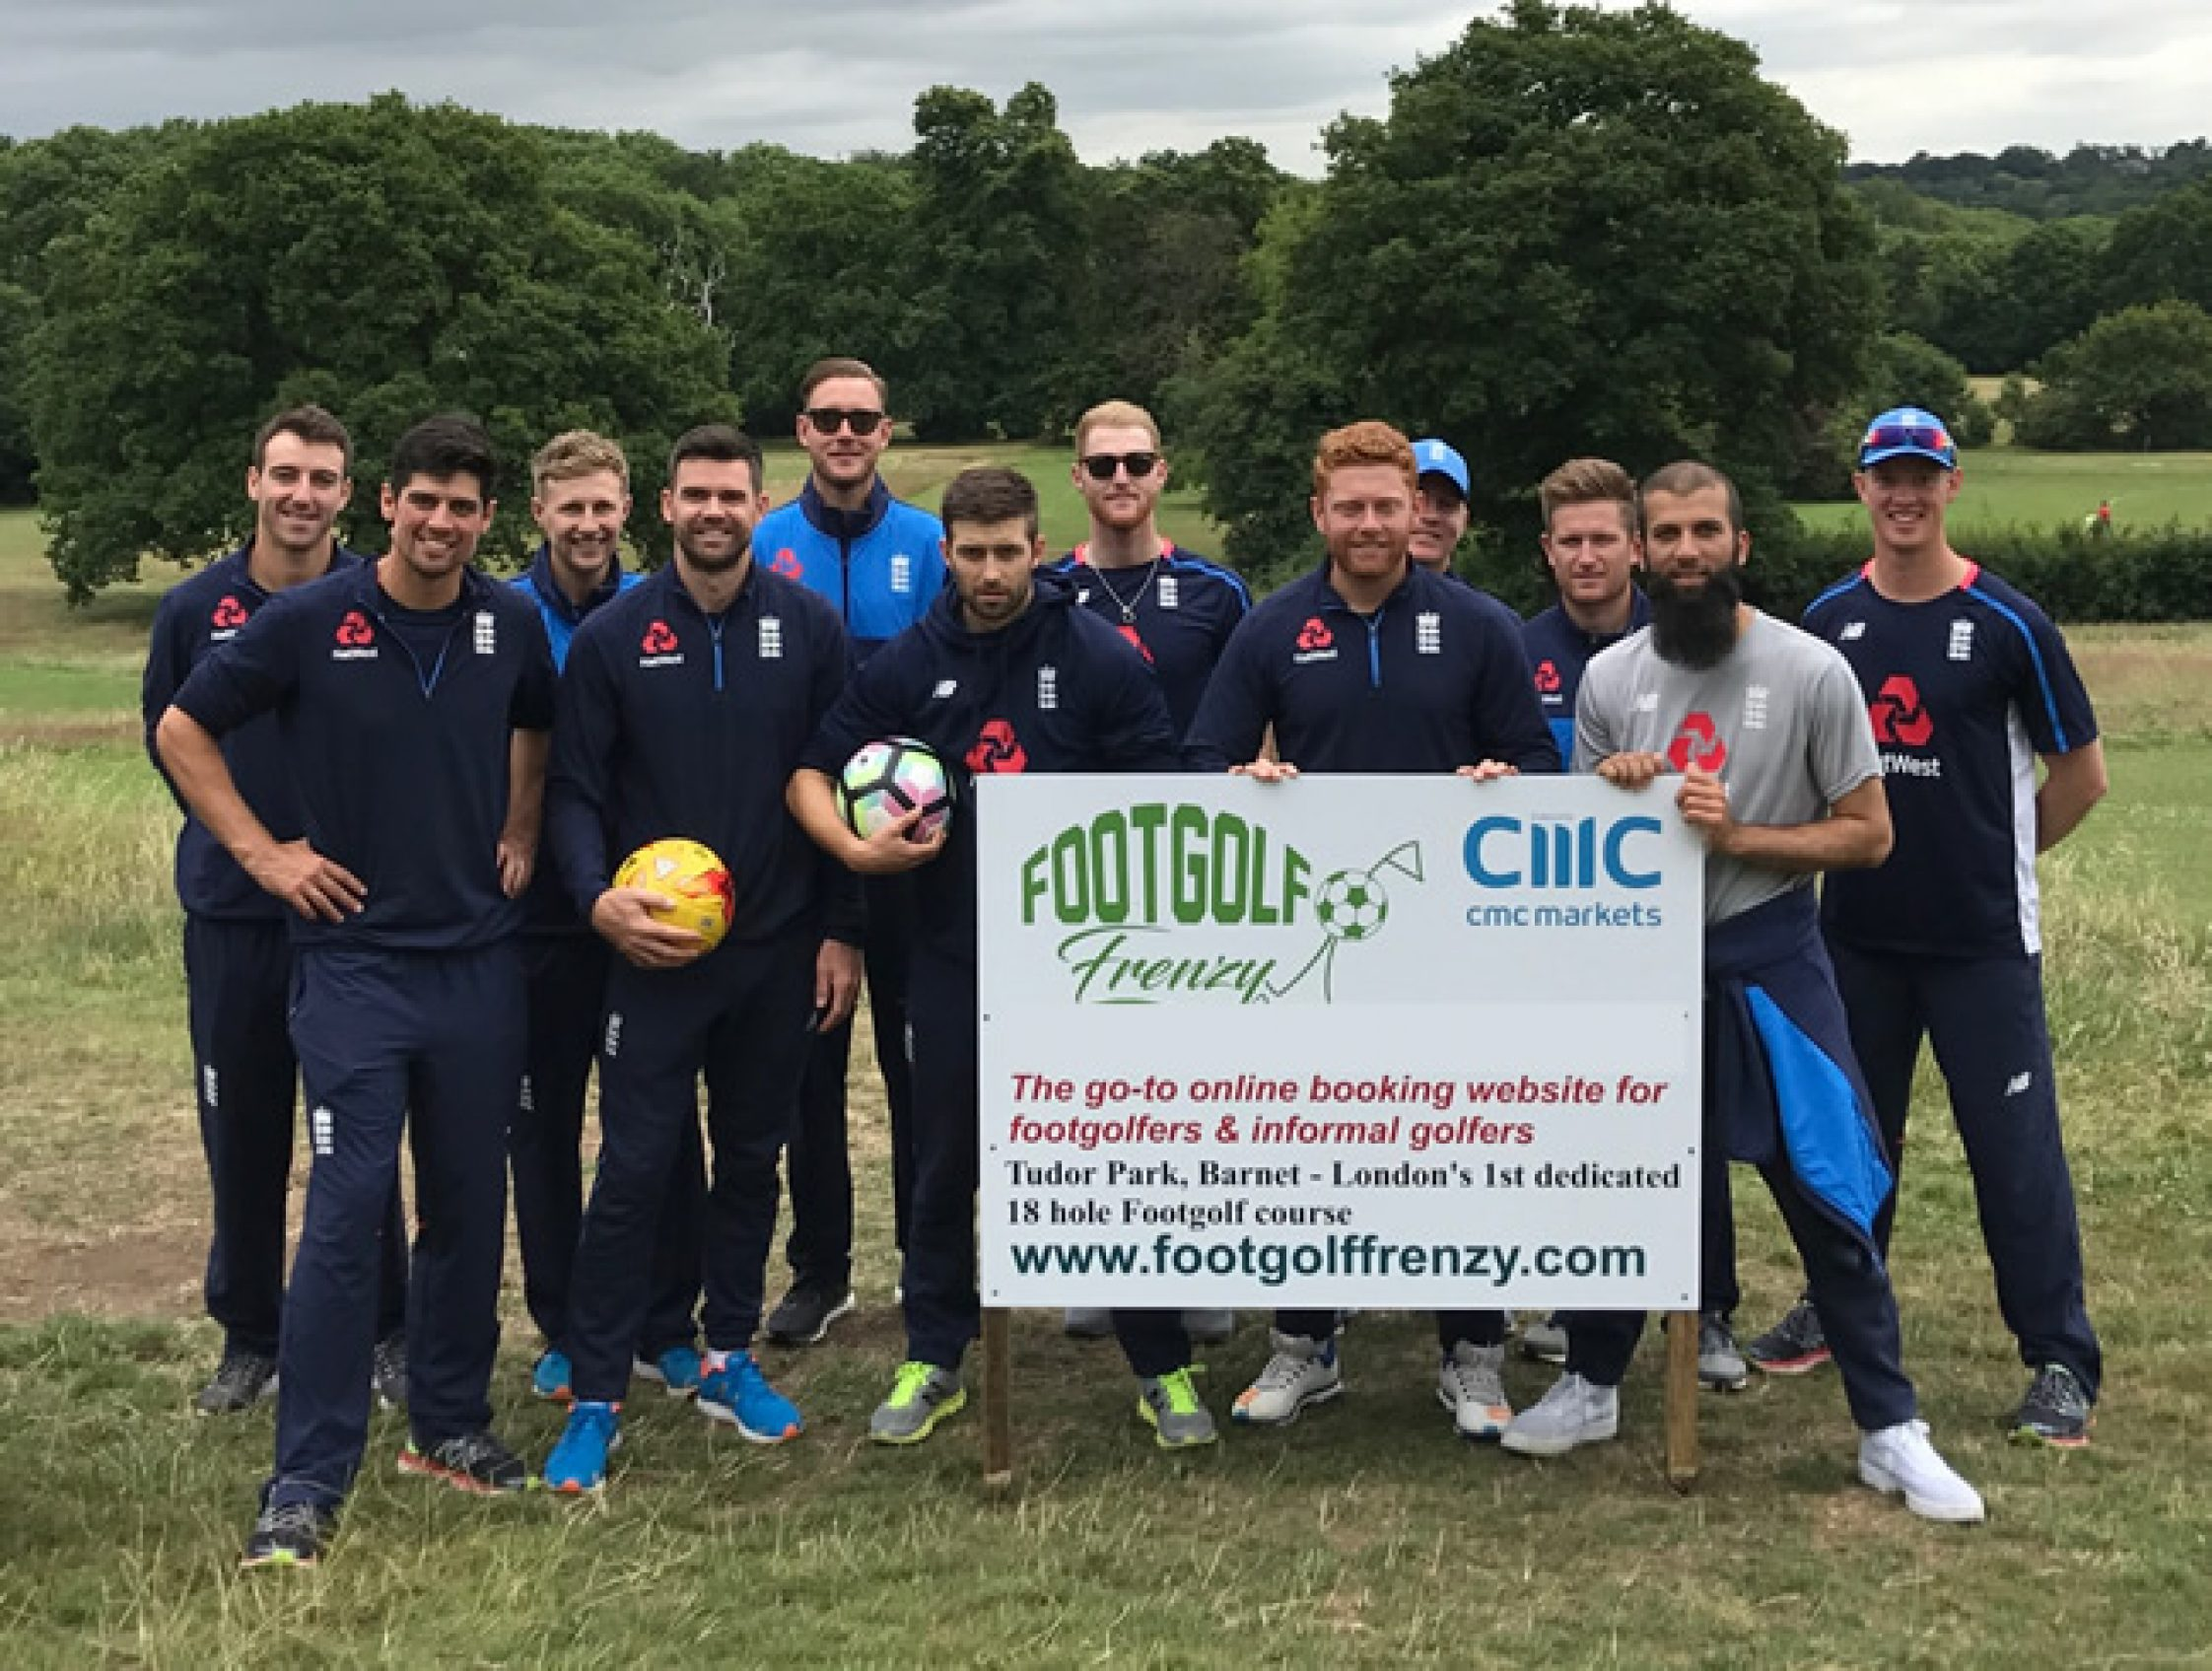 Barnet Footgolf Hosts a Footgolf Day with the England Cricket Team